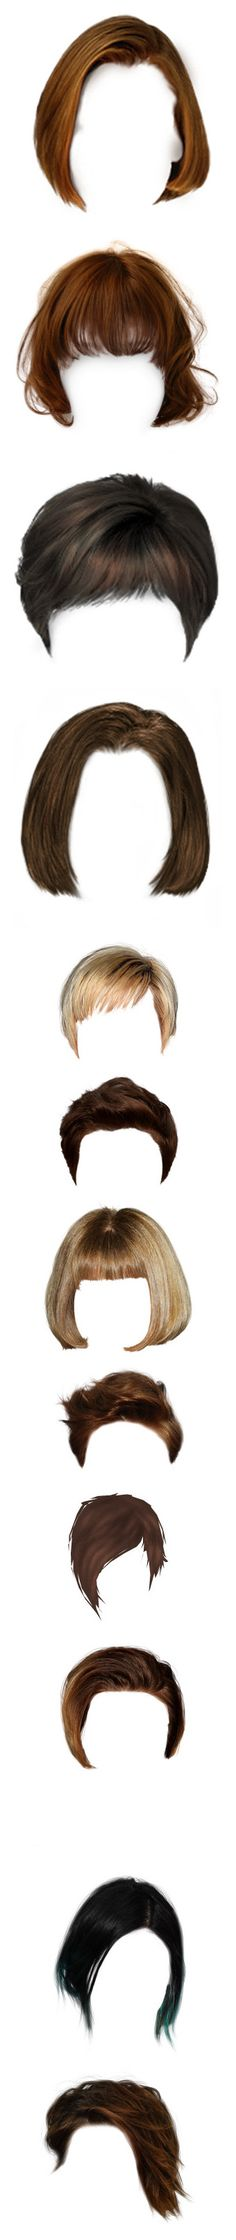 """""""Dolls: Short Hair, Natural Colors"""" by cherubicwindigo ❤ liked on Polyvore featuring hair, doll hair, dolls, wig, hairstyles, wigs, doll parts, blonde, dolls parts hair and beauty products"""